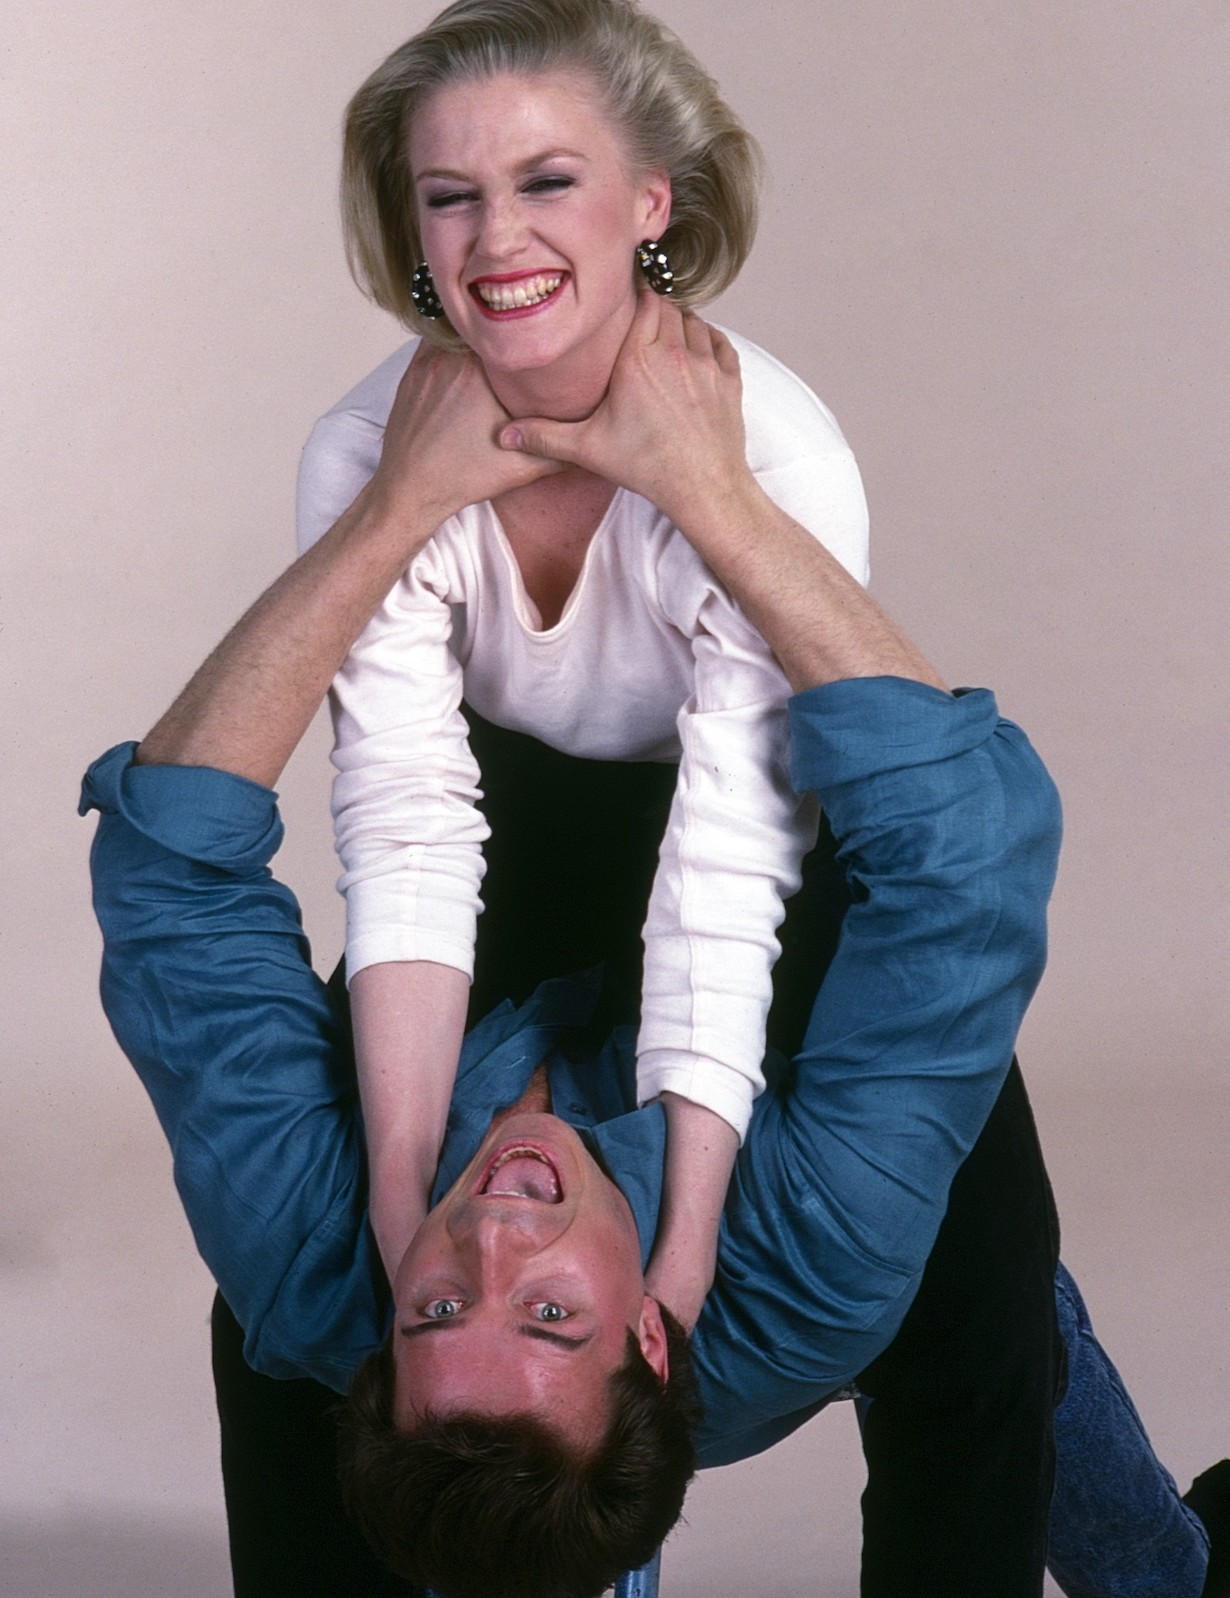 ONE LIFE TO LIVE, from top: Jessica Tuck, James DePaiva, (1989), 1968-2013. ph: Lucille Khornak/ TV Guide/©ABC/courtesy Everett Collection